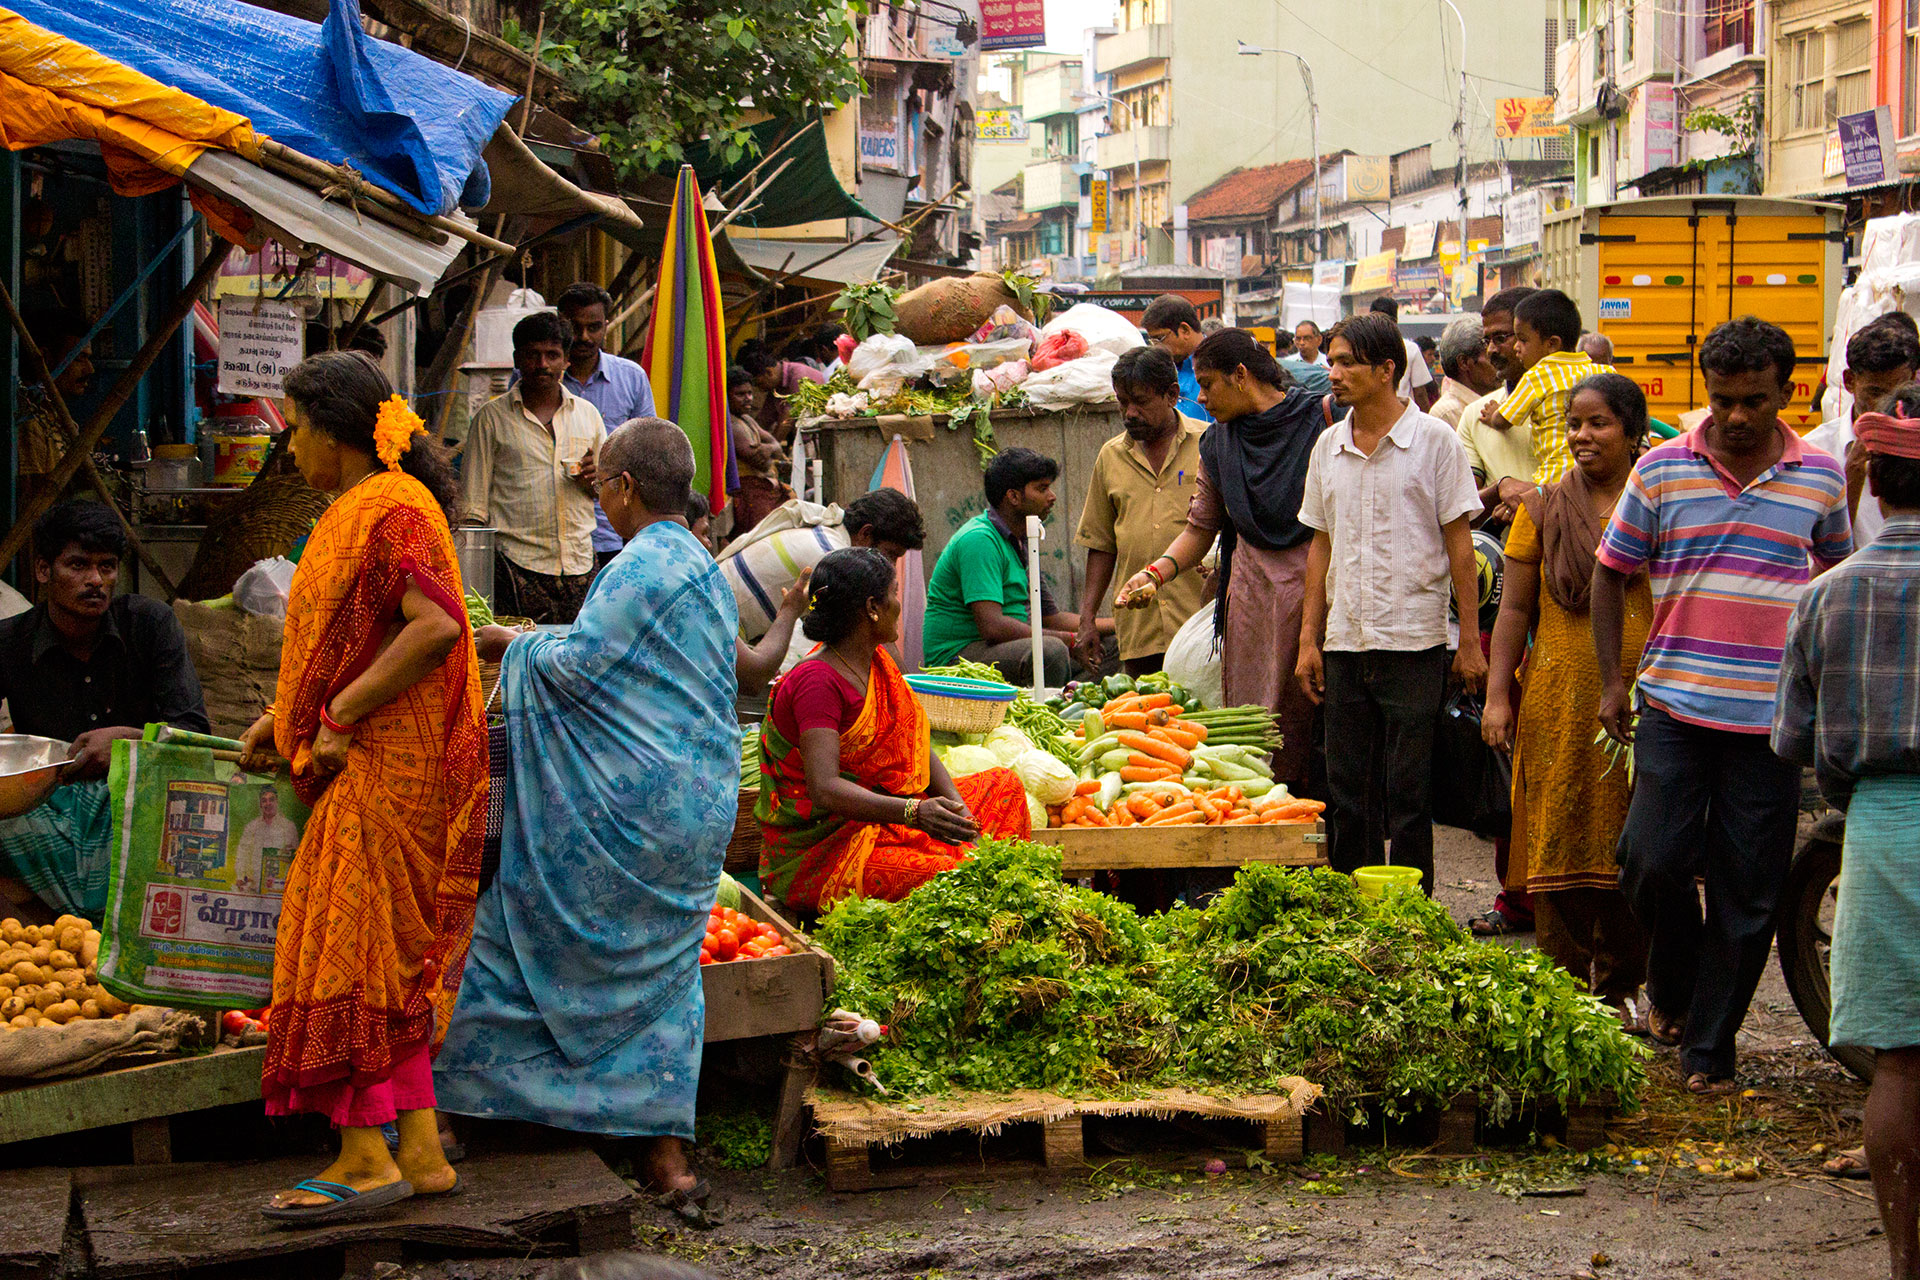 The busy and colorful Chennai Market